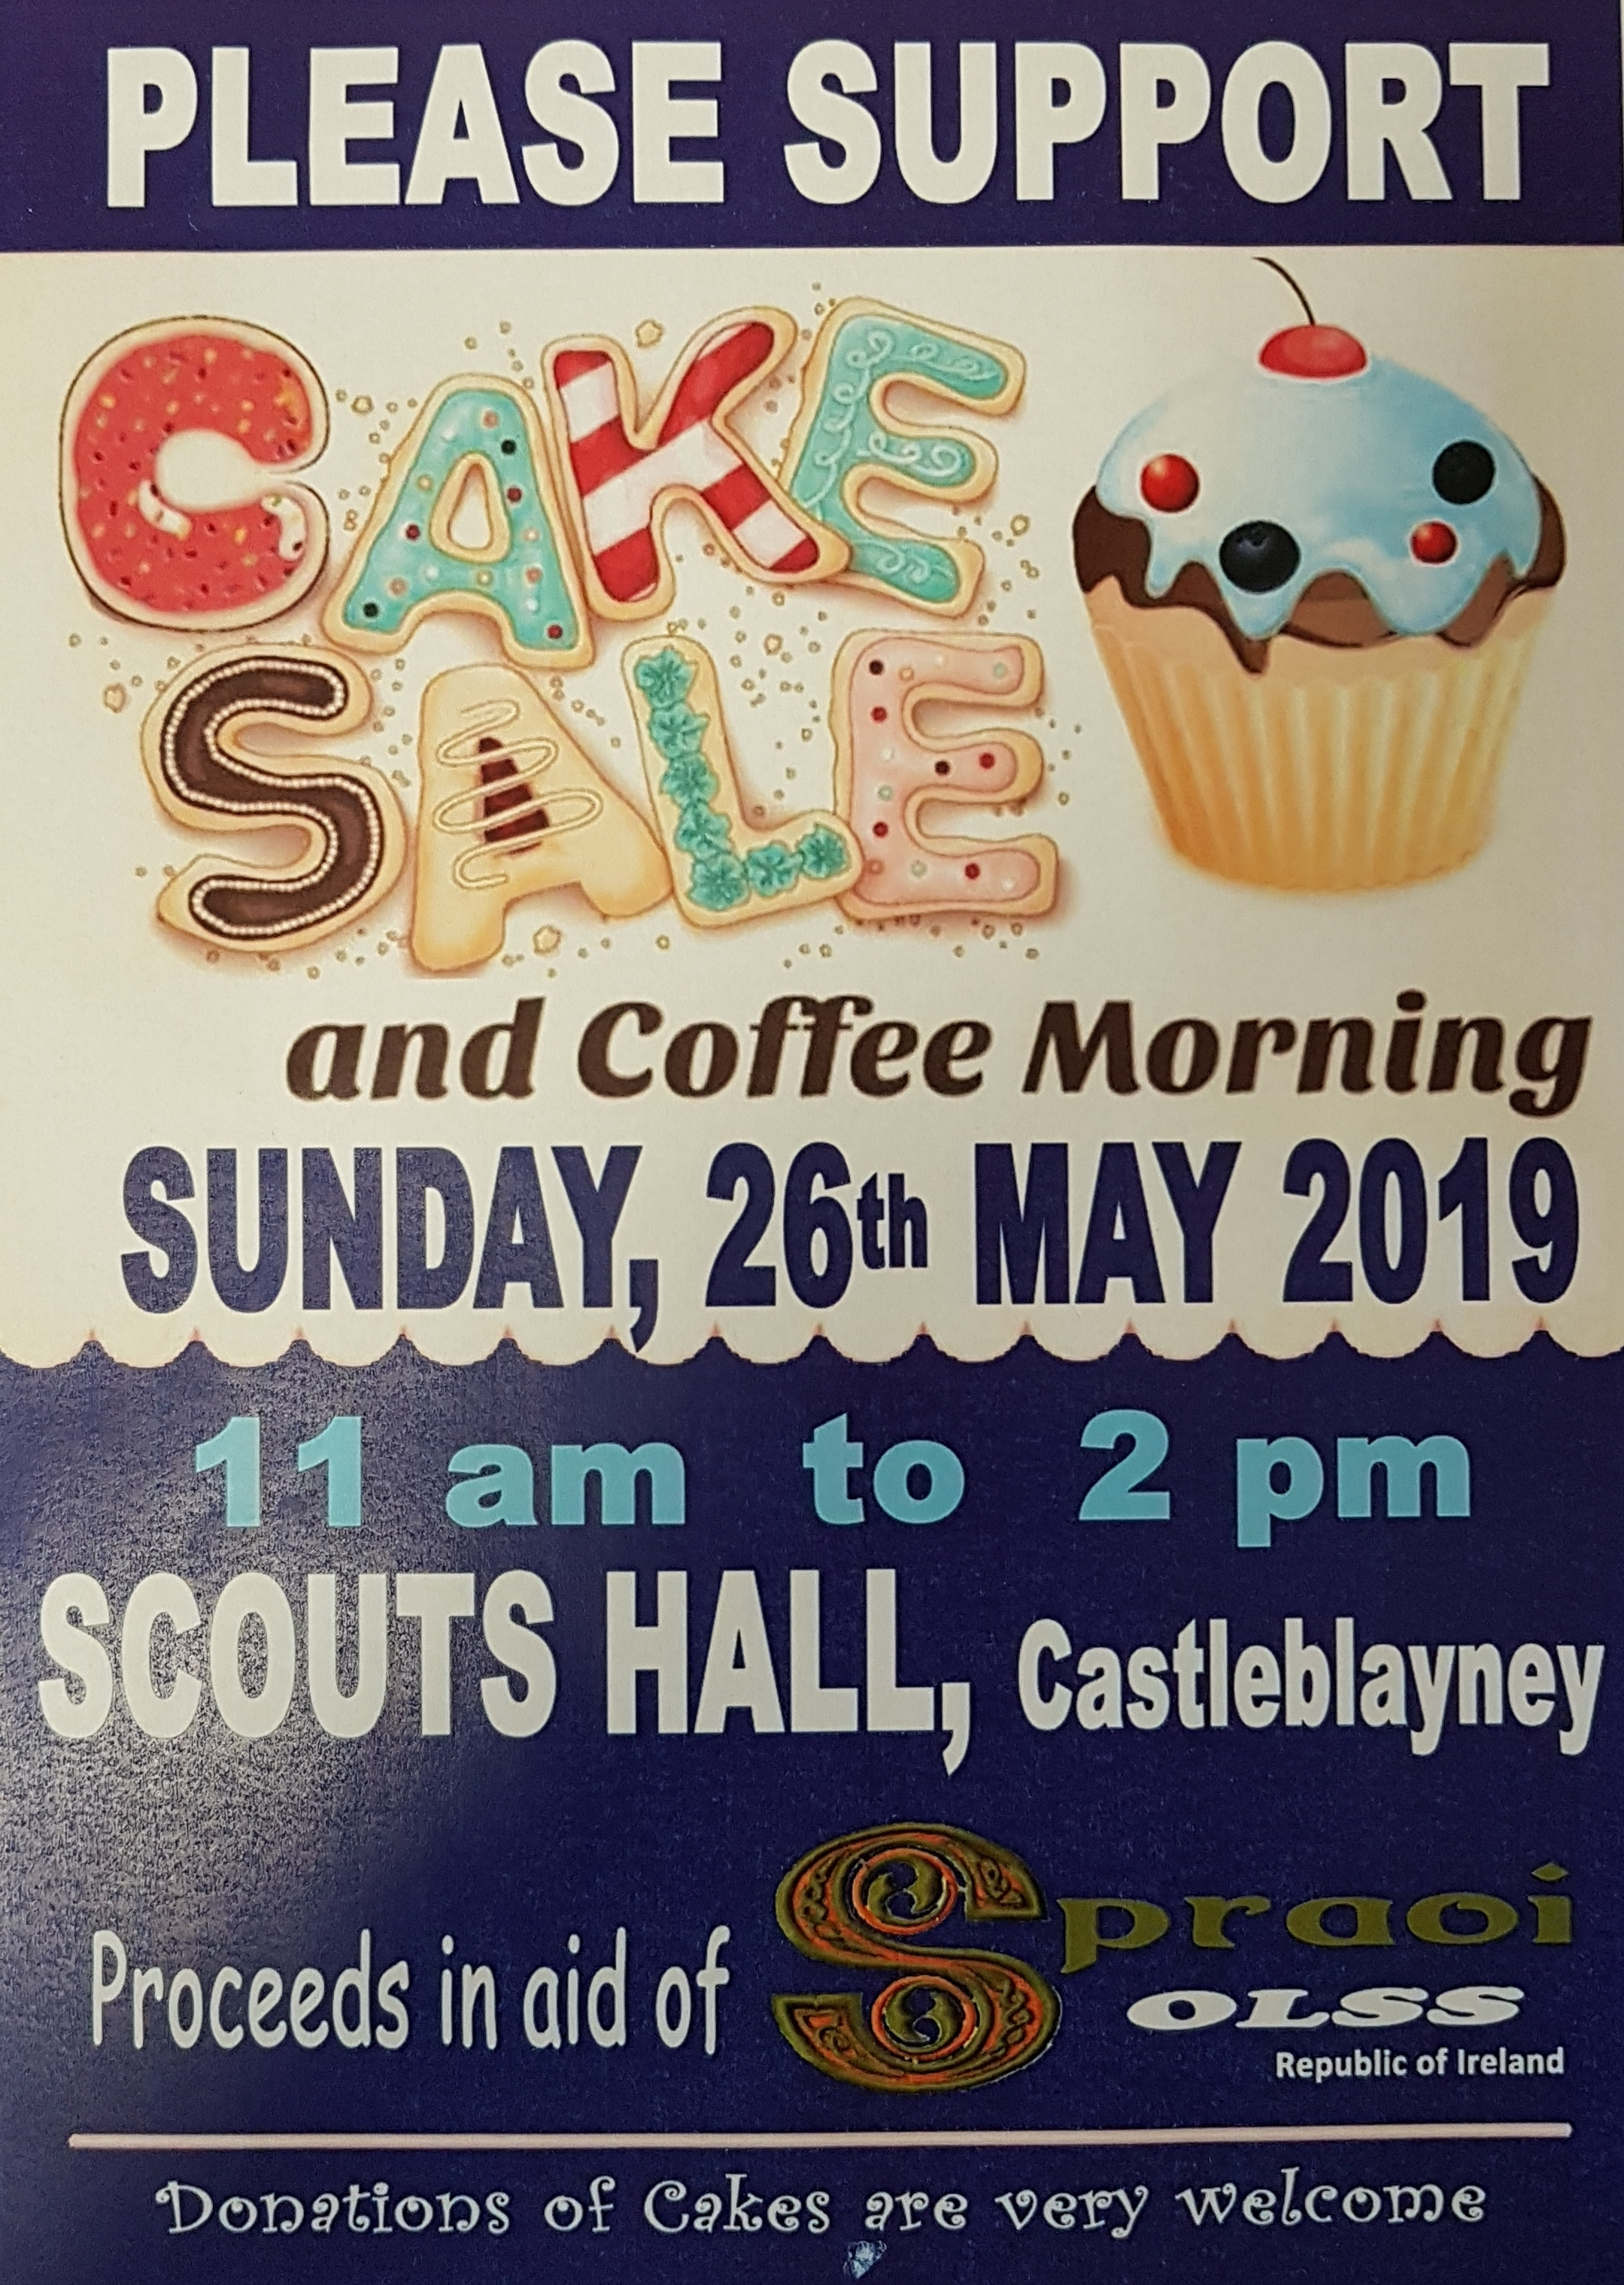 cc2e241a2d3 Our Lady s Secondary School will hold a coffee morning and cake sale on  Sunday 26th May from 11am to 2pm in Scout Hall